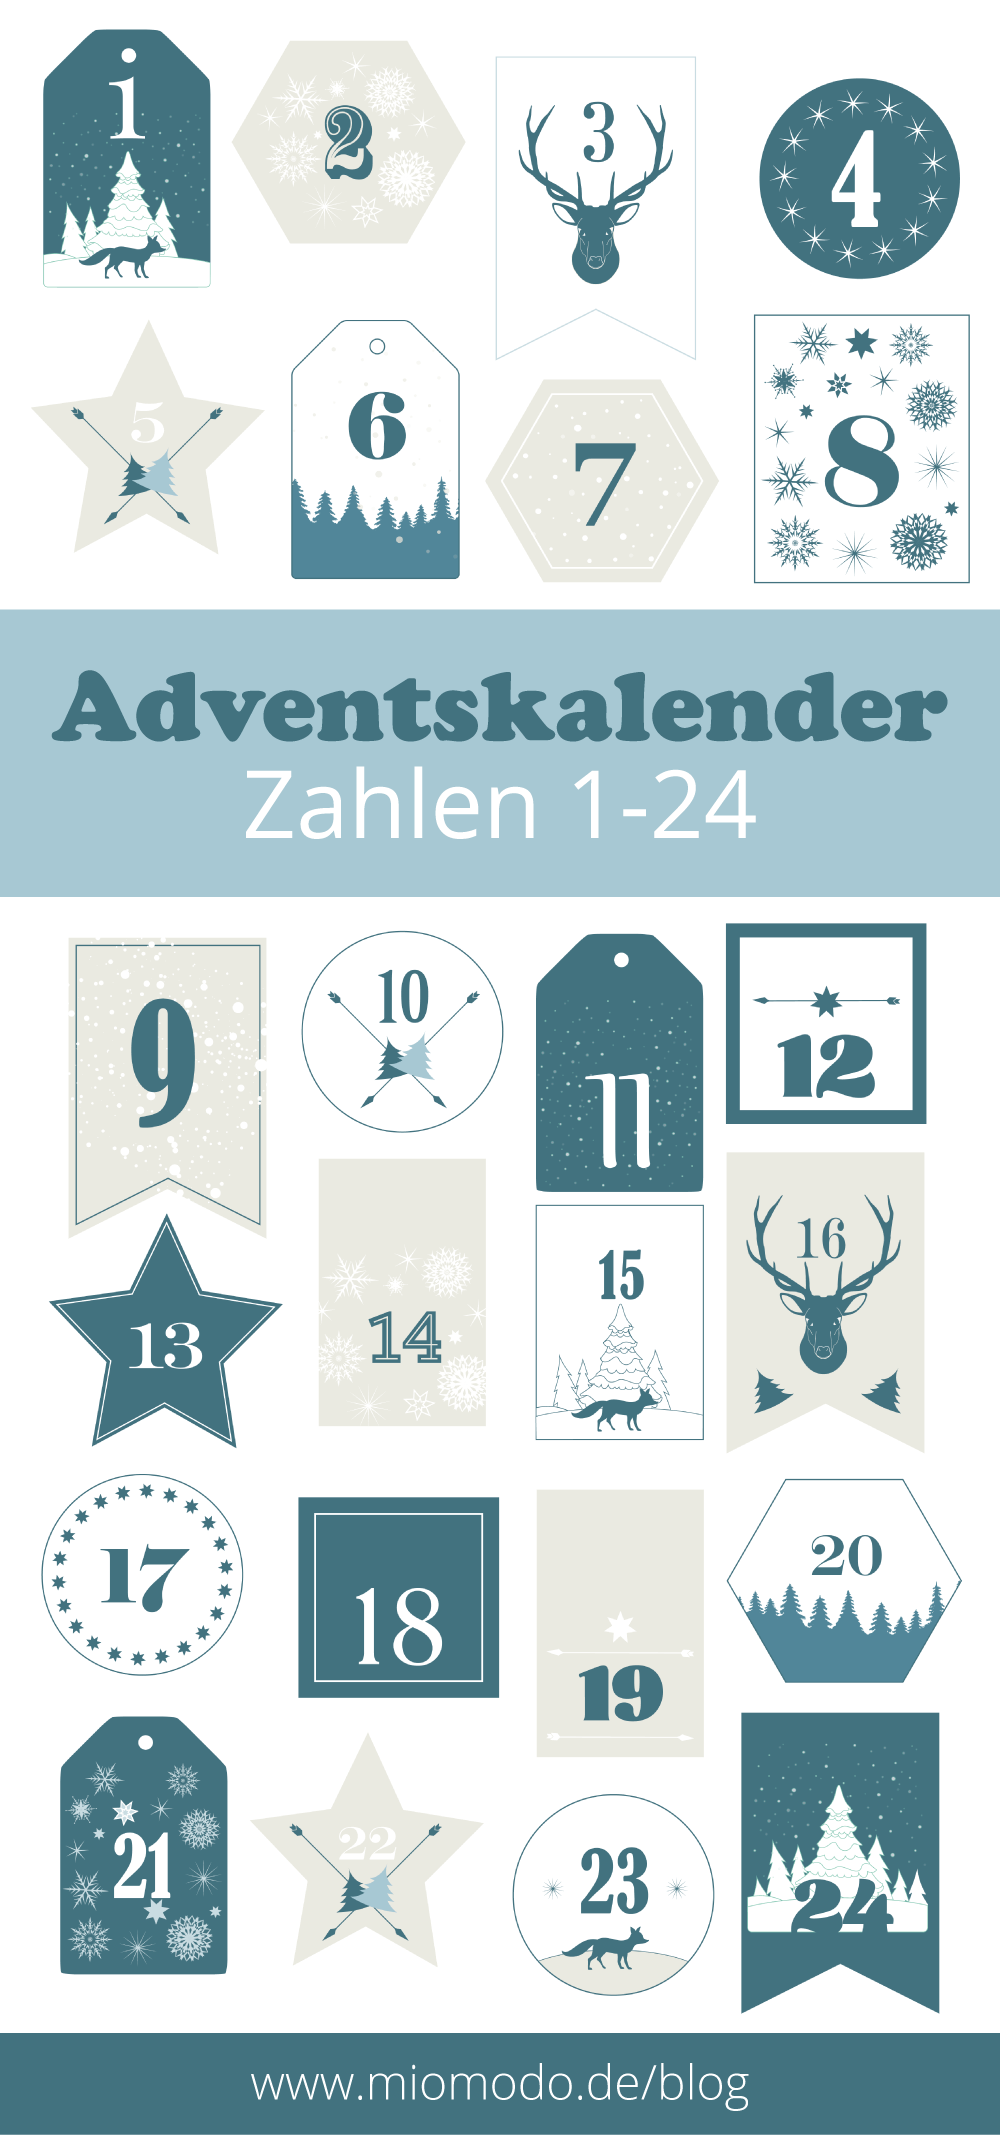 adventskalender zahlen 1 24 drucken miomodo diy blog. Black Bedroom Furniture Sets. Home Design Ideas